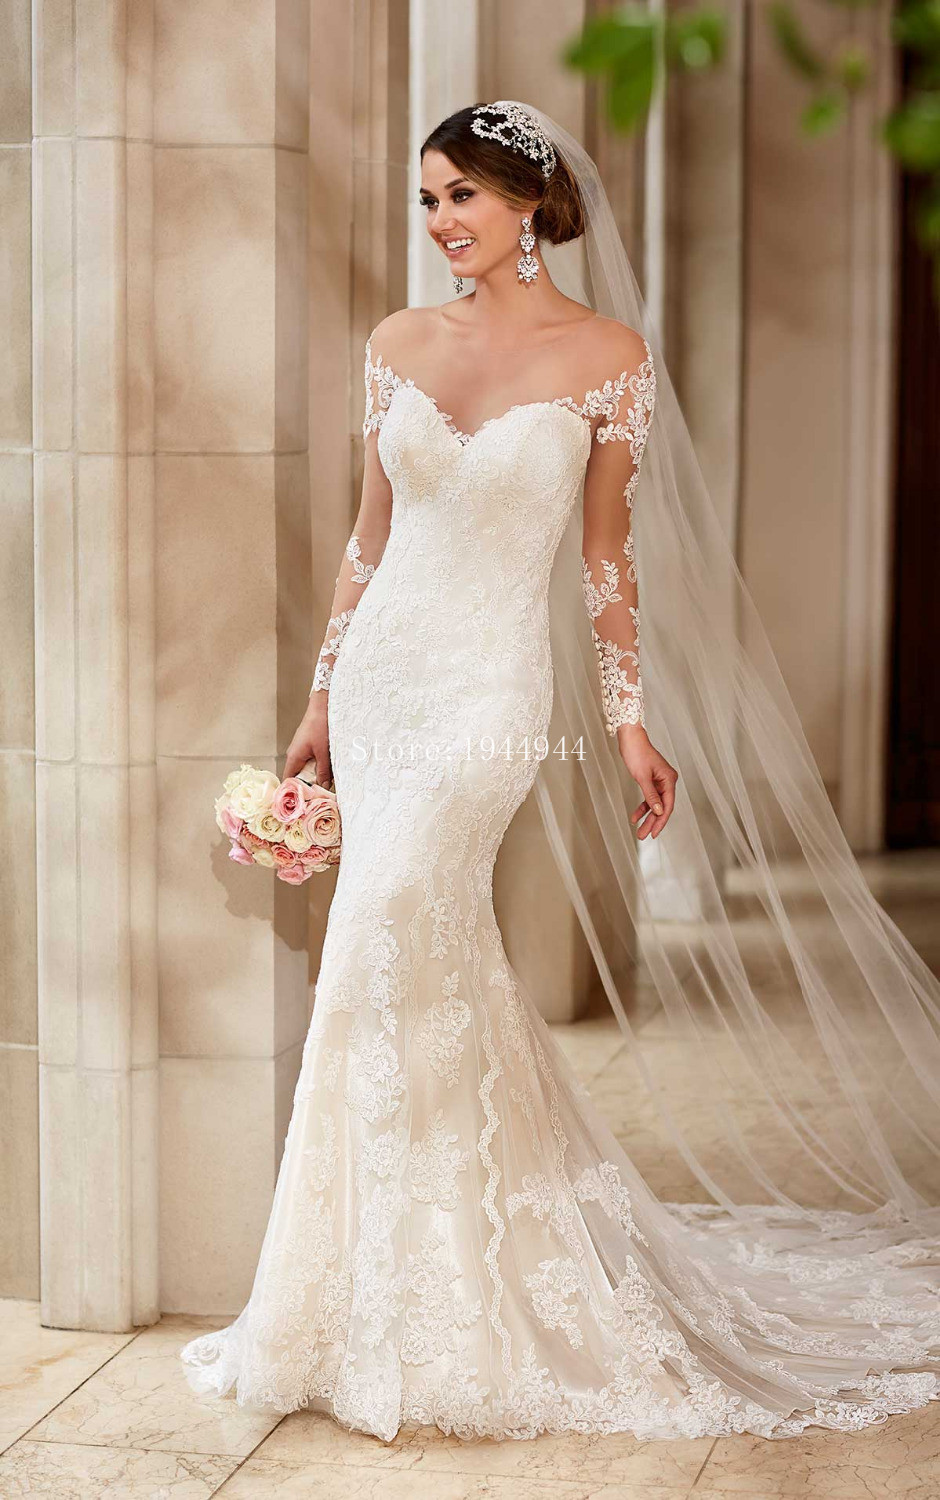 Online Buy Wholesale Tight Wedding Dress From China Tight Wedding Dress Whole